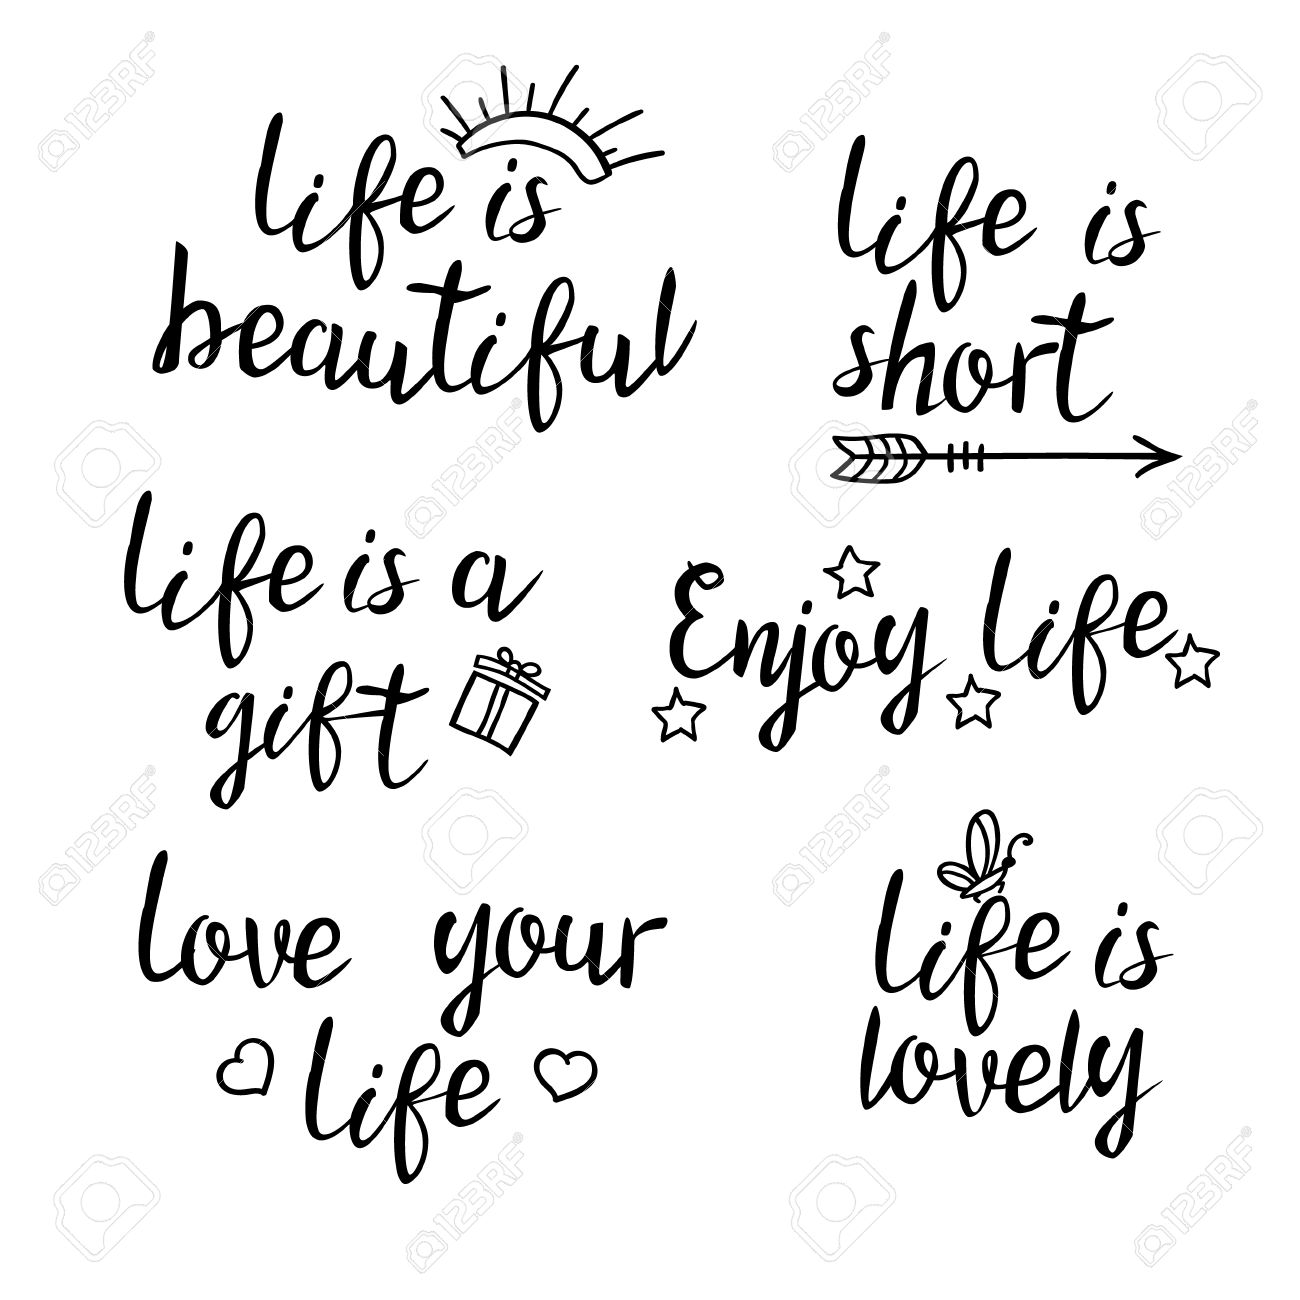 Short Life Quotes Lettering Life Quotescalligraphy Inspirational Quote About